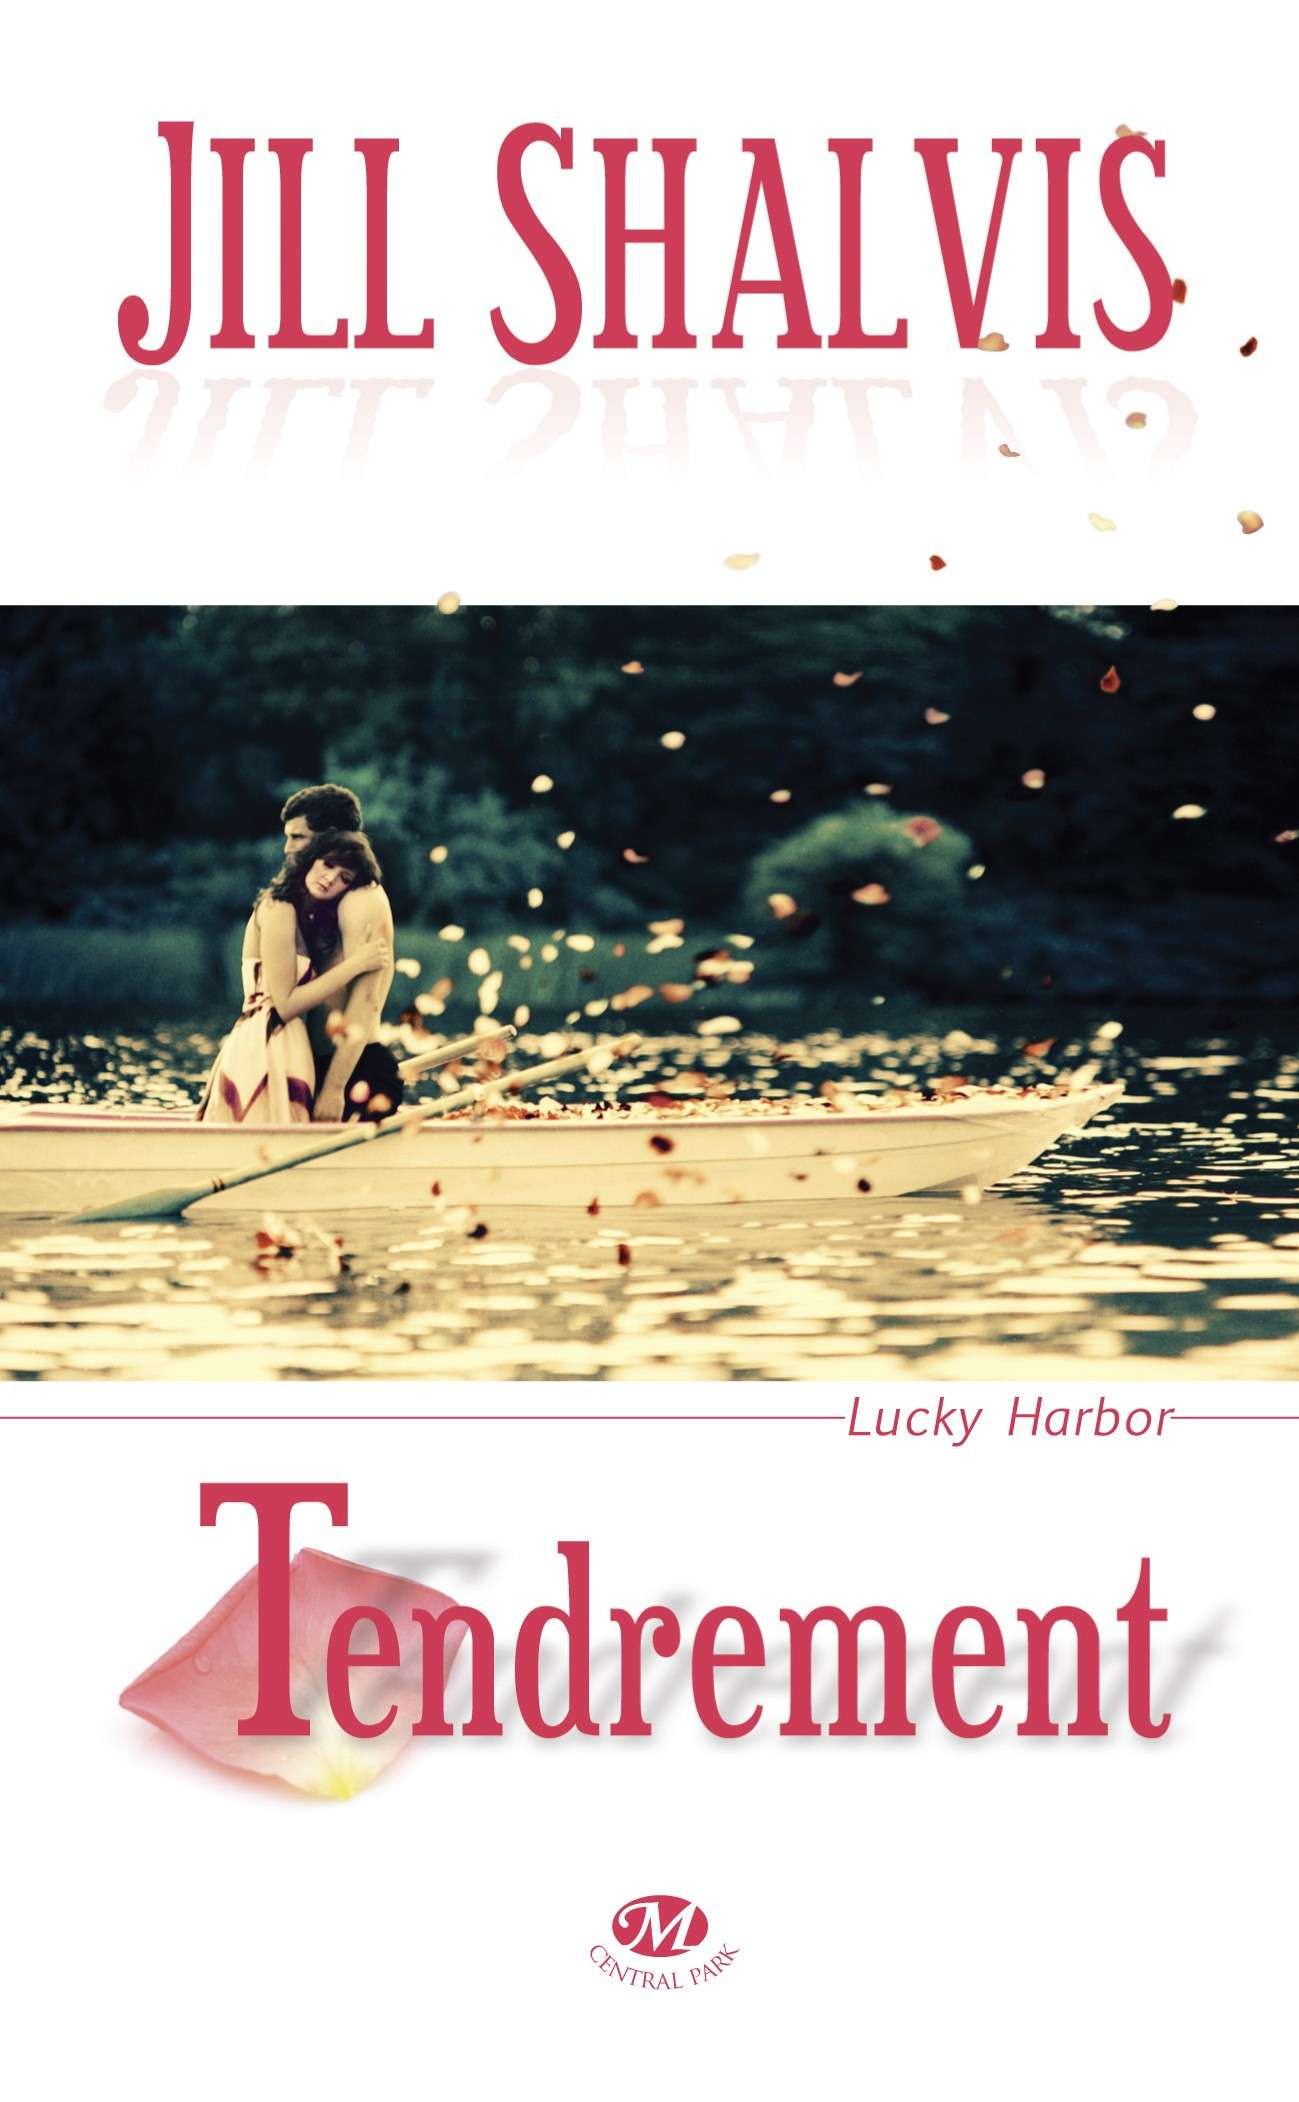 lucky harbor - Lucky Harbor - Tome 2 : Tendrement de Jill Shalvis  Ccp_te10